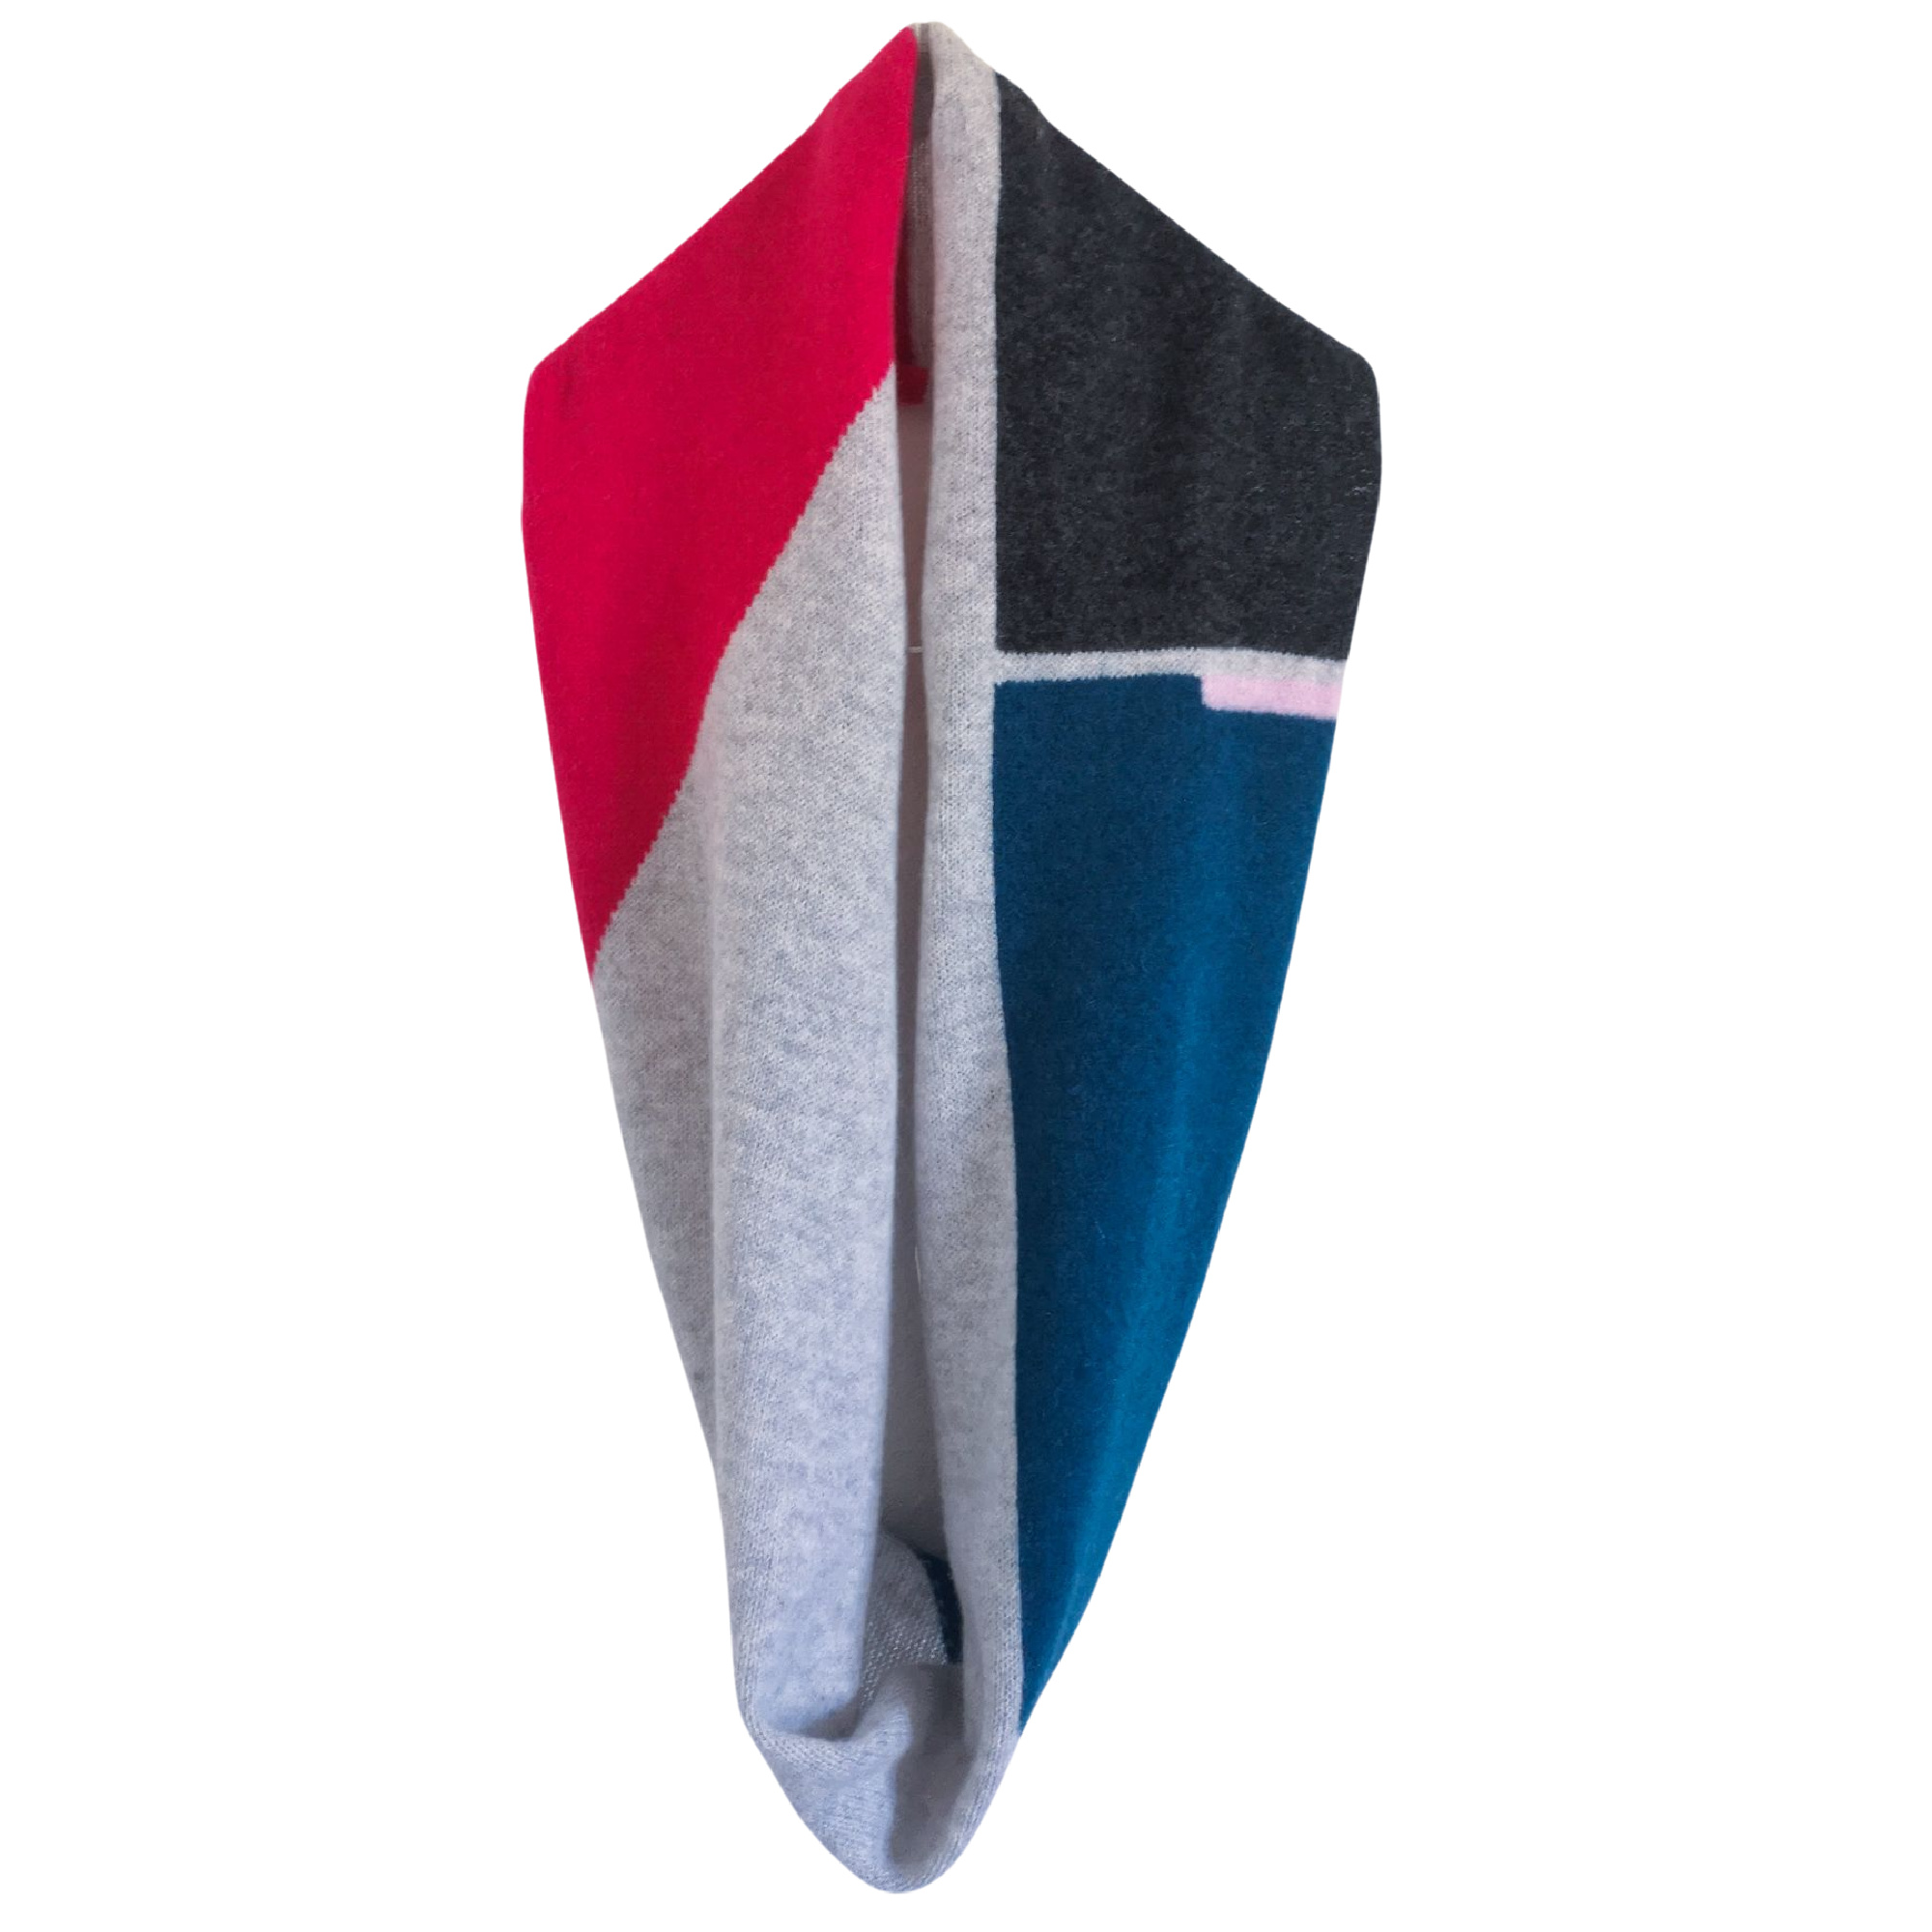 Intarsia Block Double Snood by Lyndsey Currie